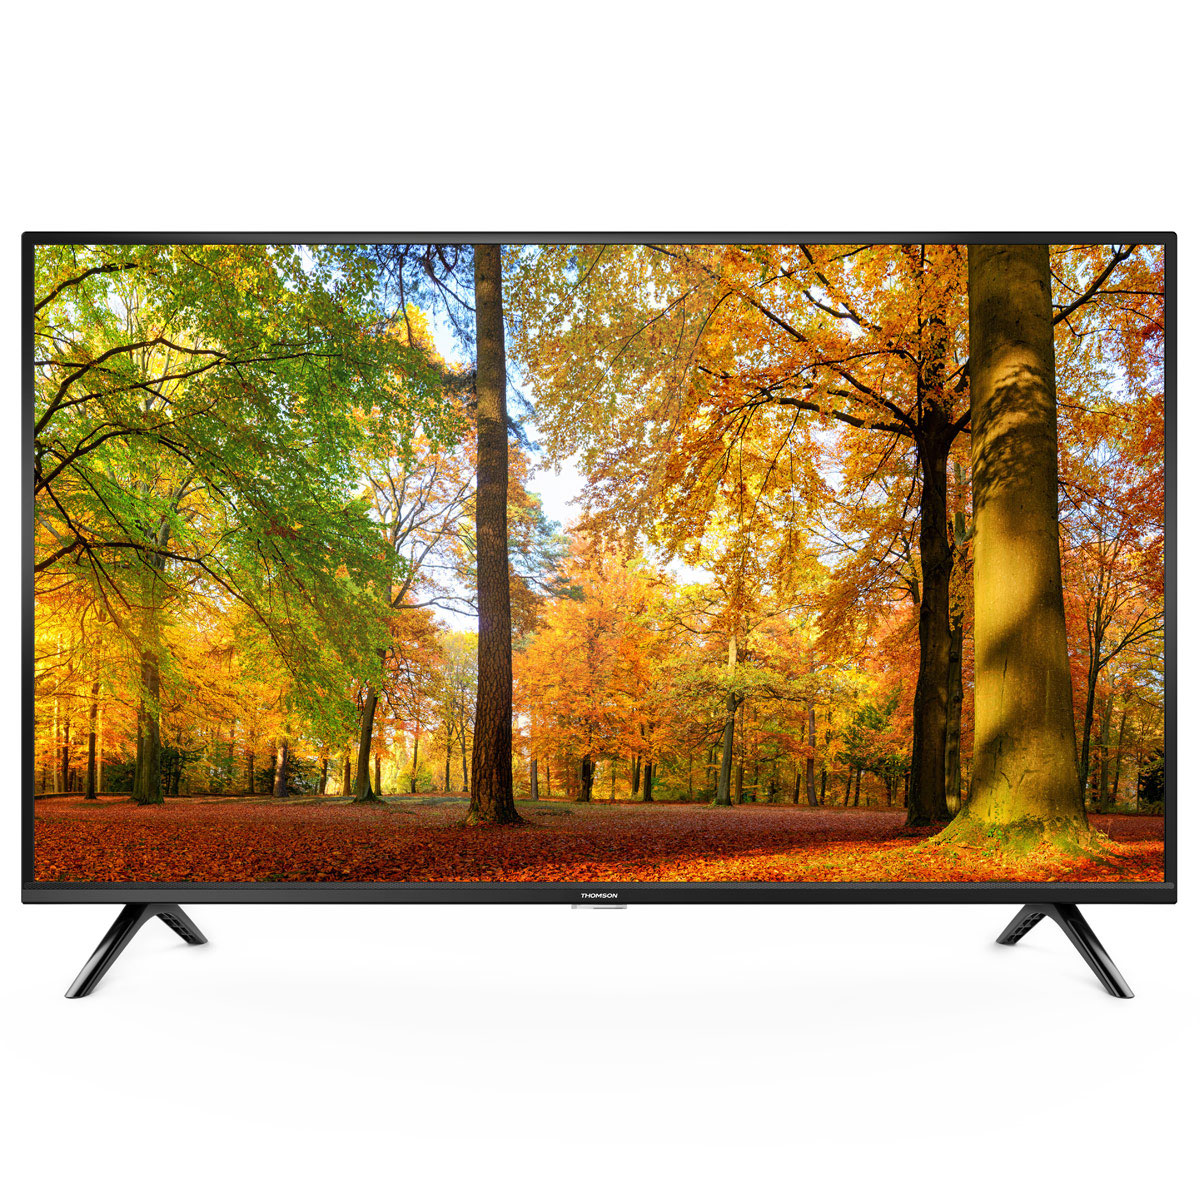 "TV Thomson 40FD3346 Téléviseur LED Full HD 40"" (102 cm) 16/9 - 1920 x 1080 pixels - HDTV 1080p - 200 Hz"